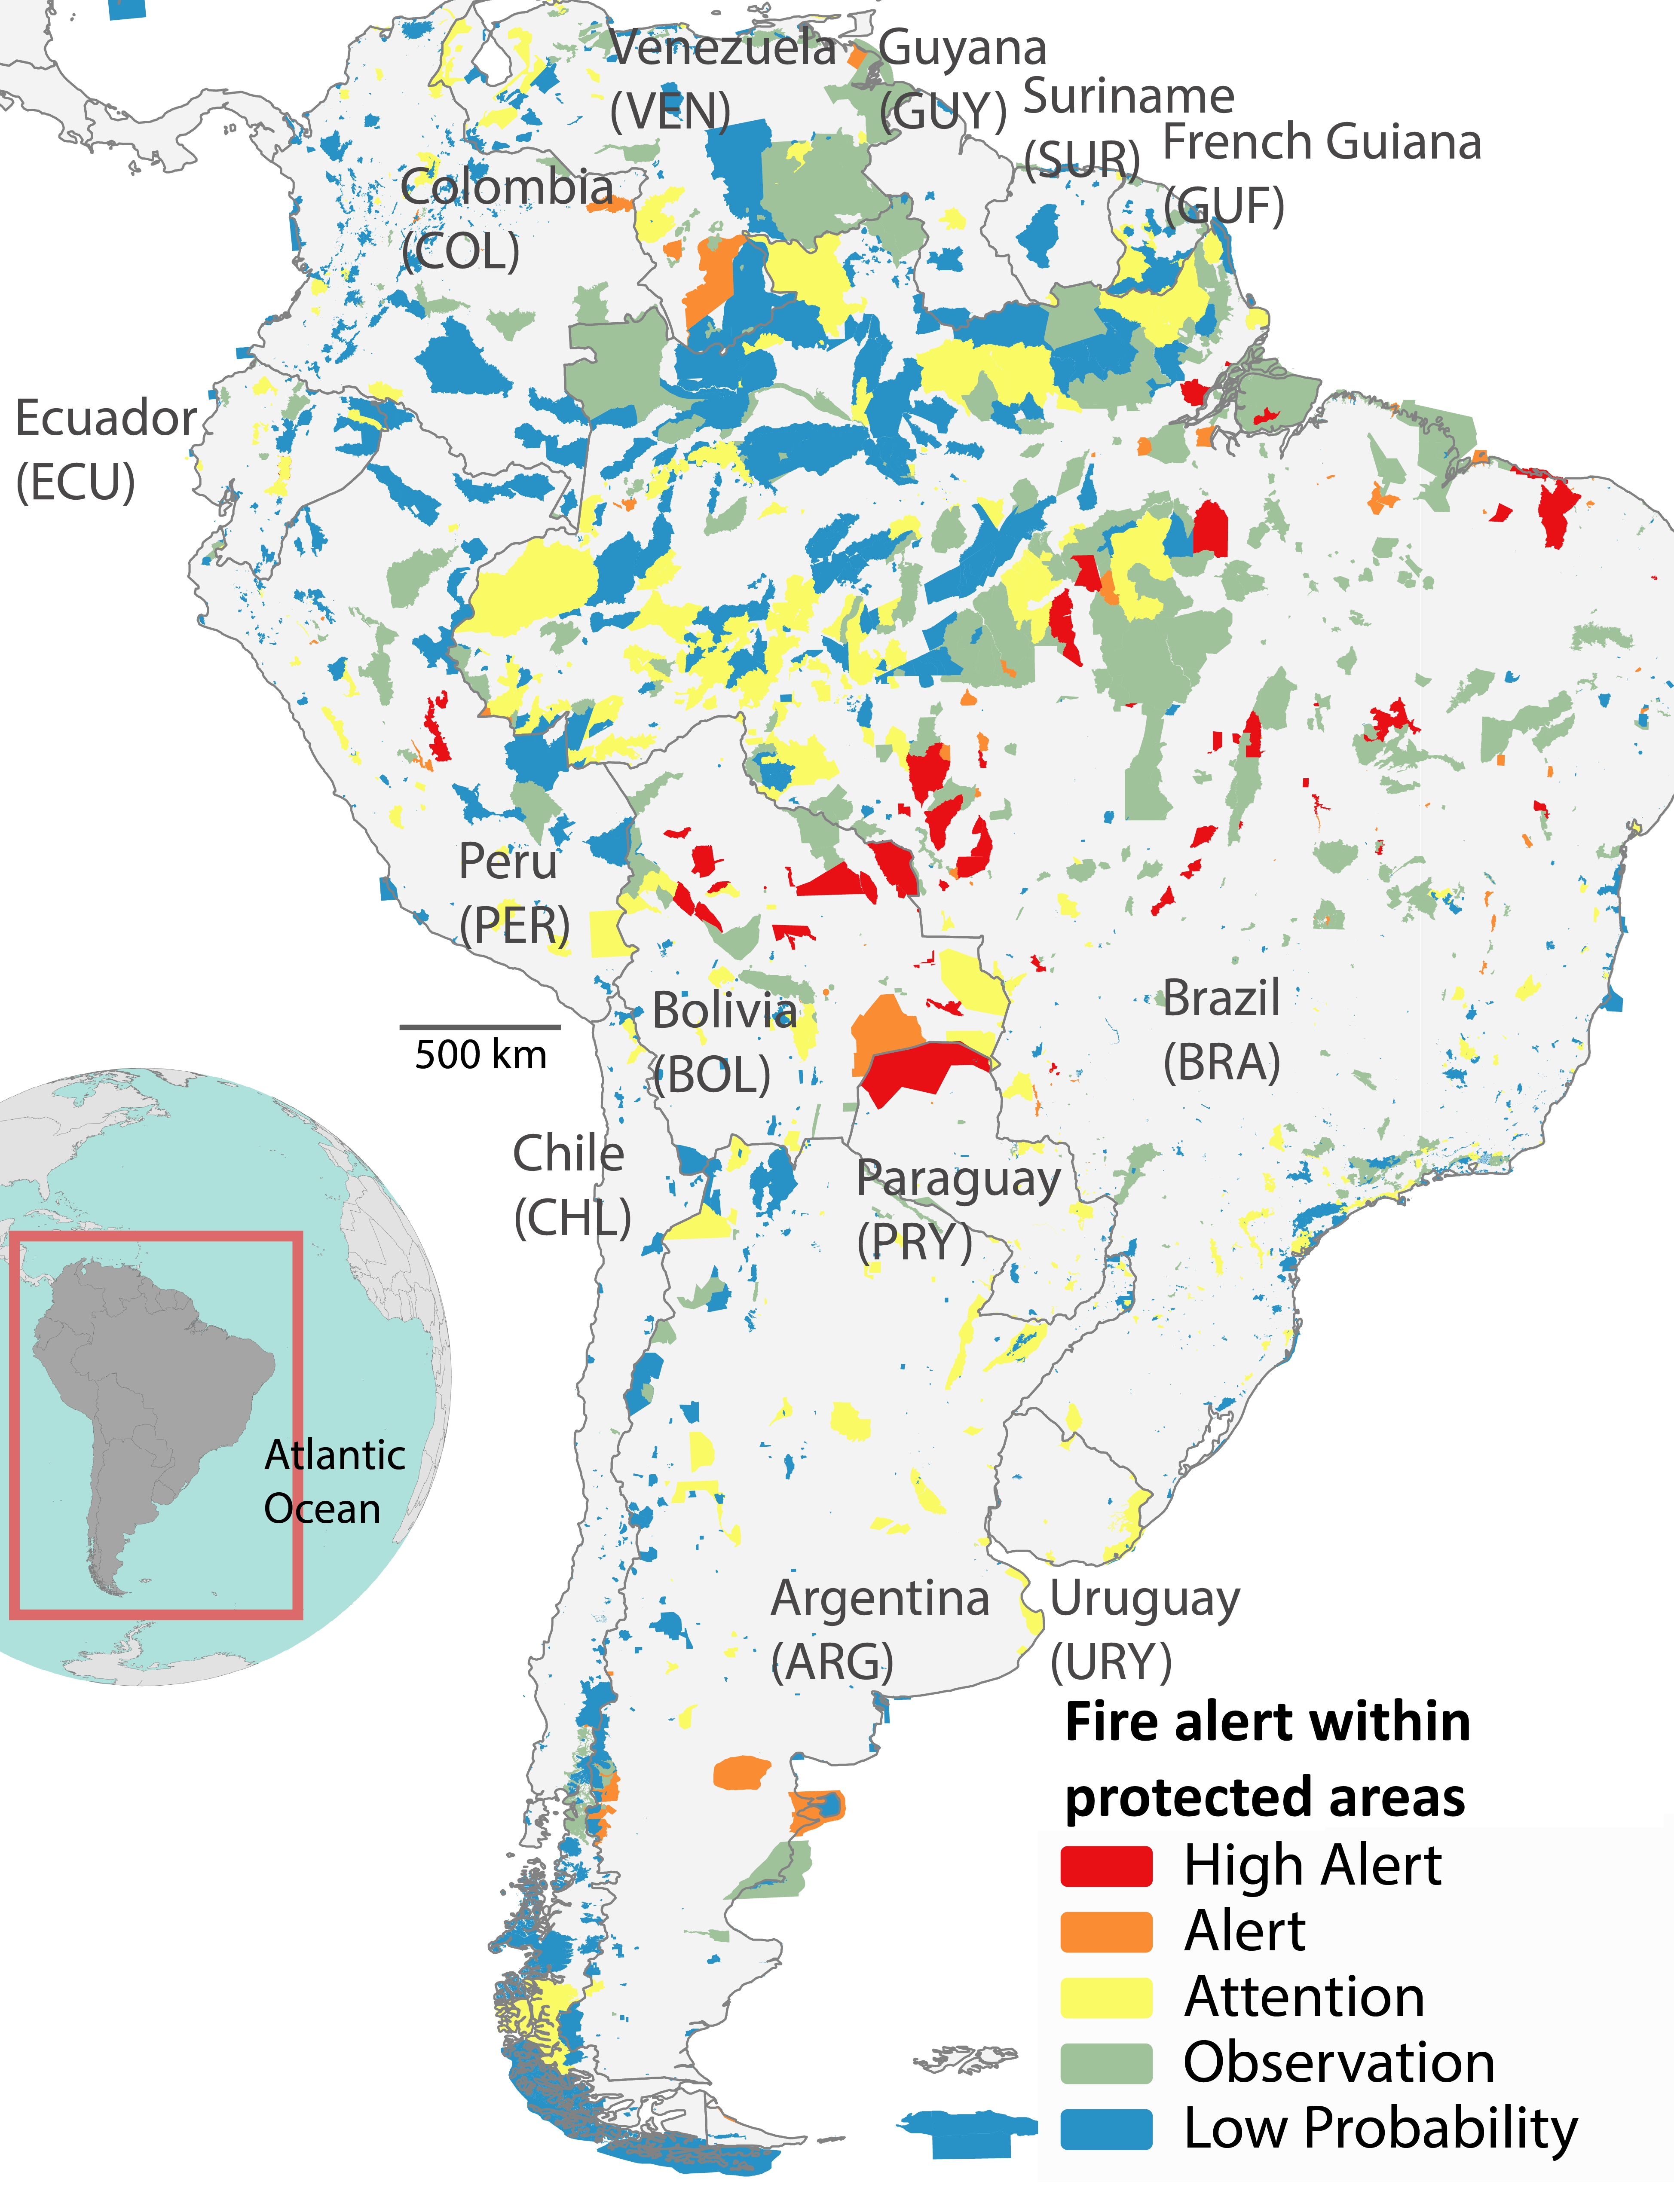 Map of South America showing status of fire alert within protected areas